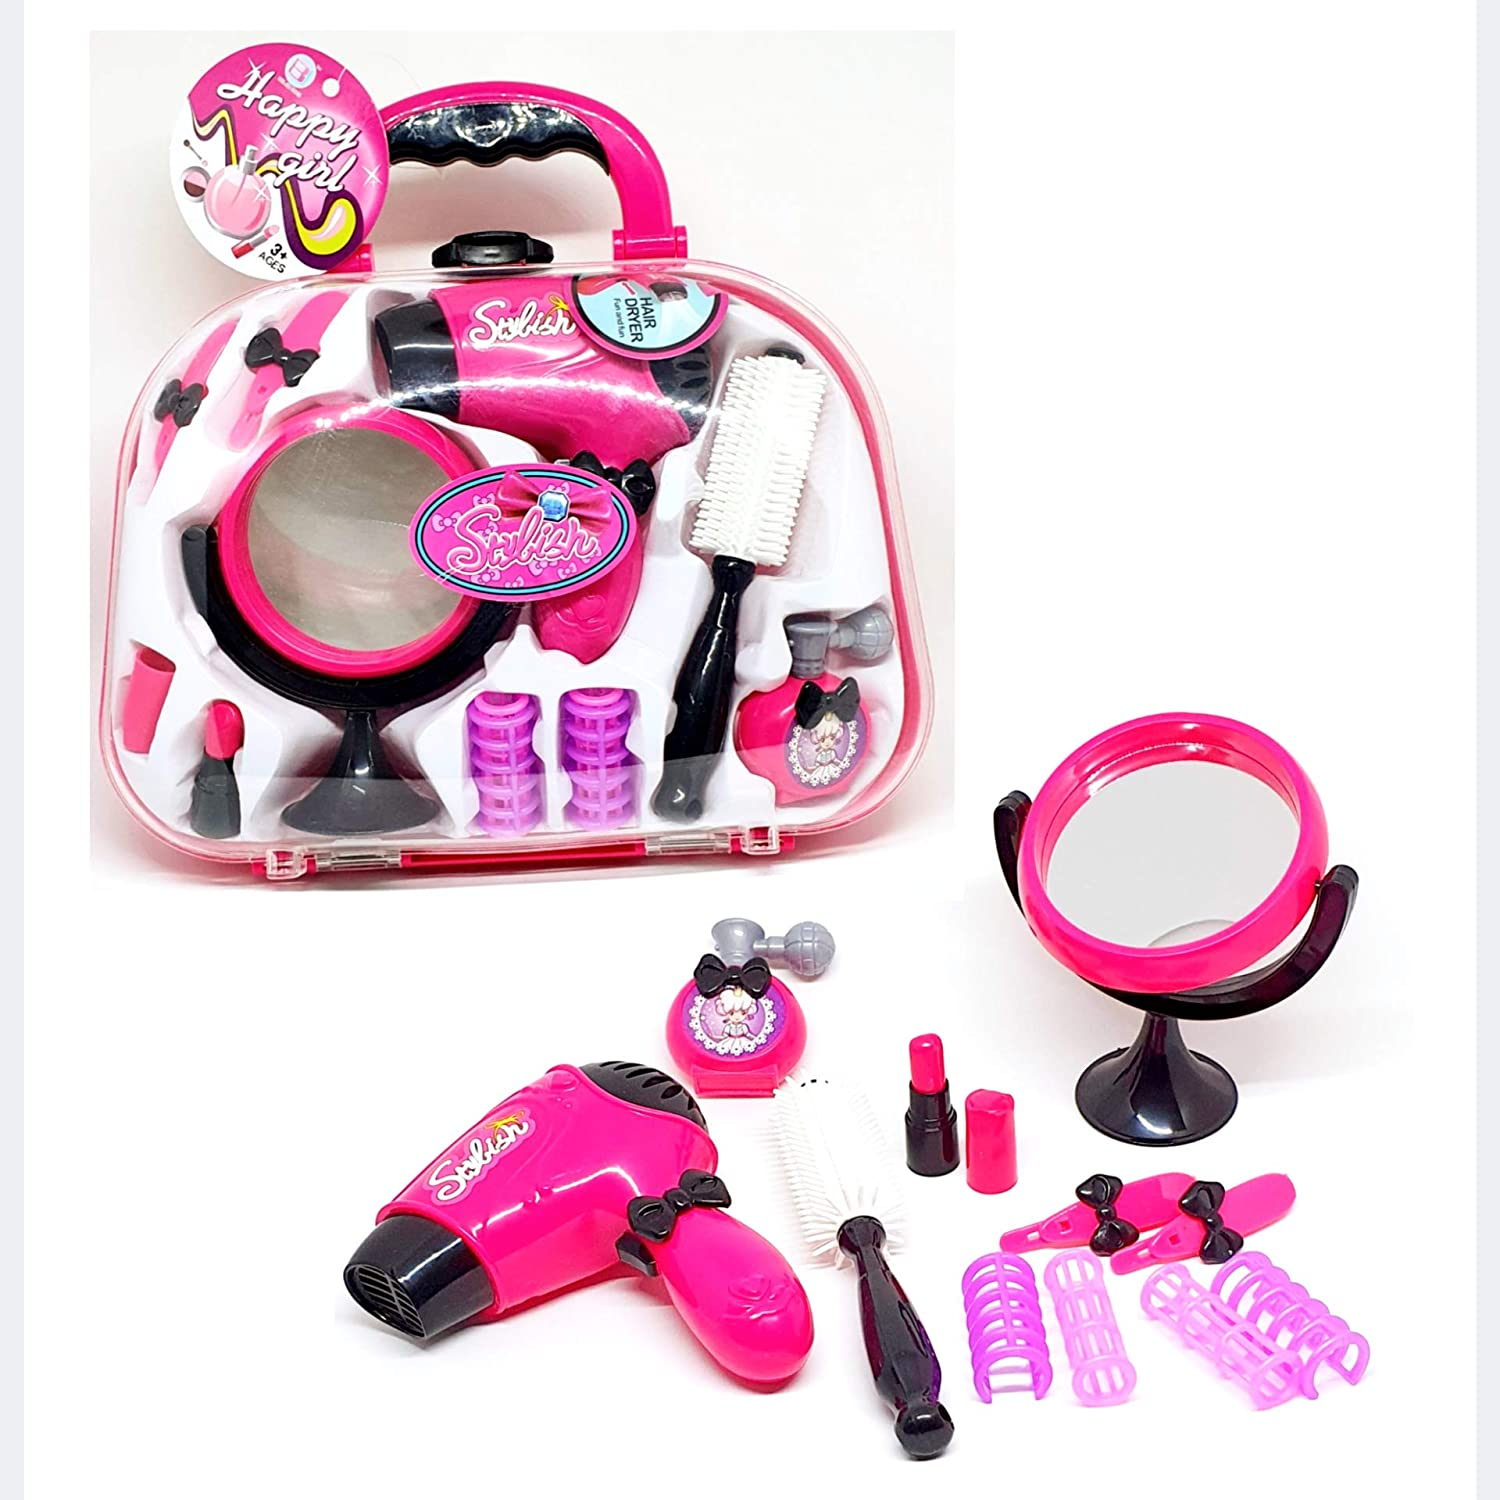 with non-glass mirror and battery-operated hair dryer all in a portable carry case Coolstuffx Pretend Hairdressing and Beauty Set for Girls